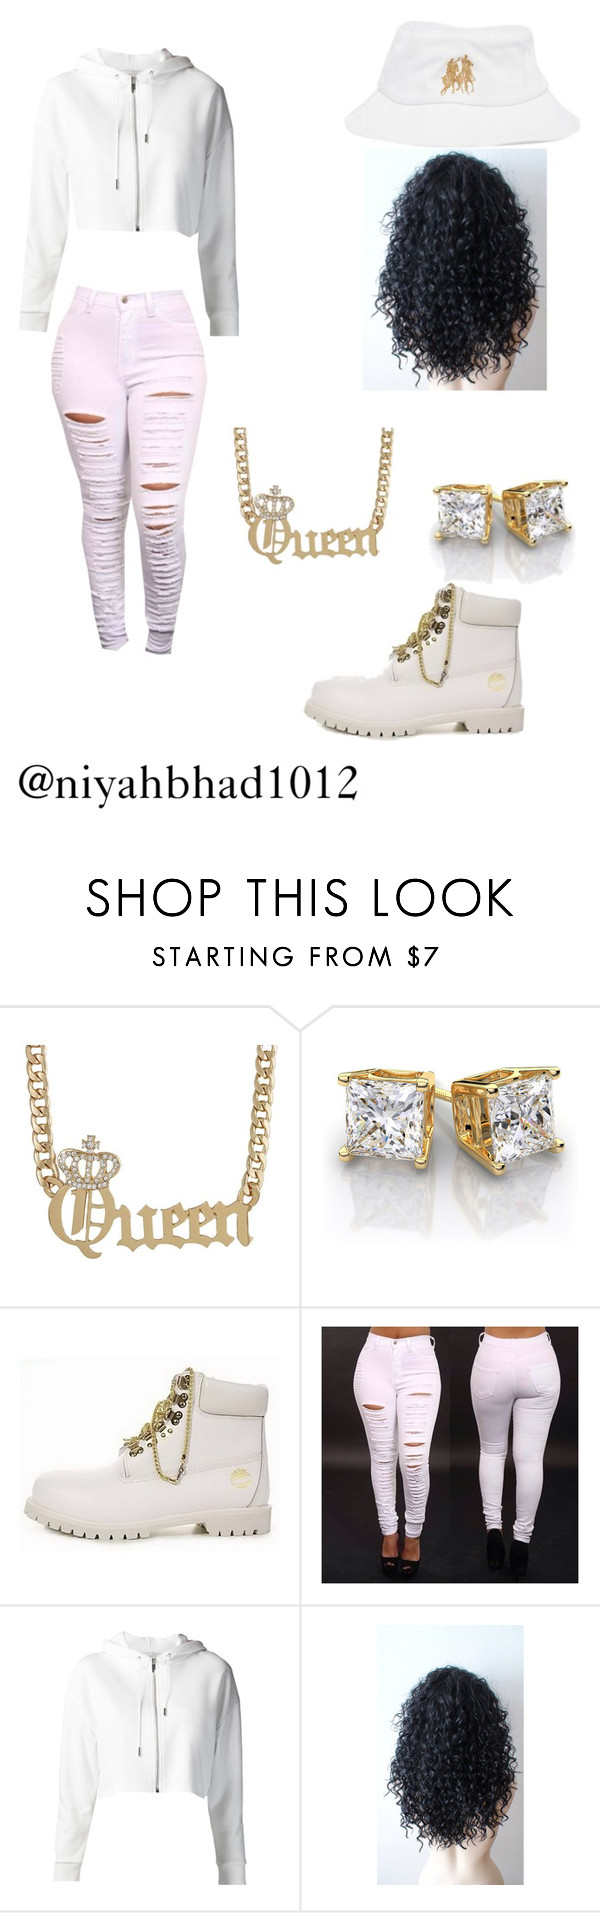 """Untitled #108"" by niyahbhad1012 ❤ liked on Polyvore featuring Yves Saint Laurent and Breezy Excursion"